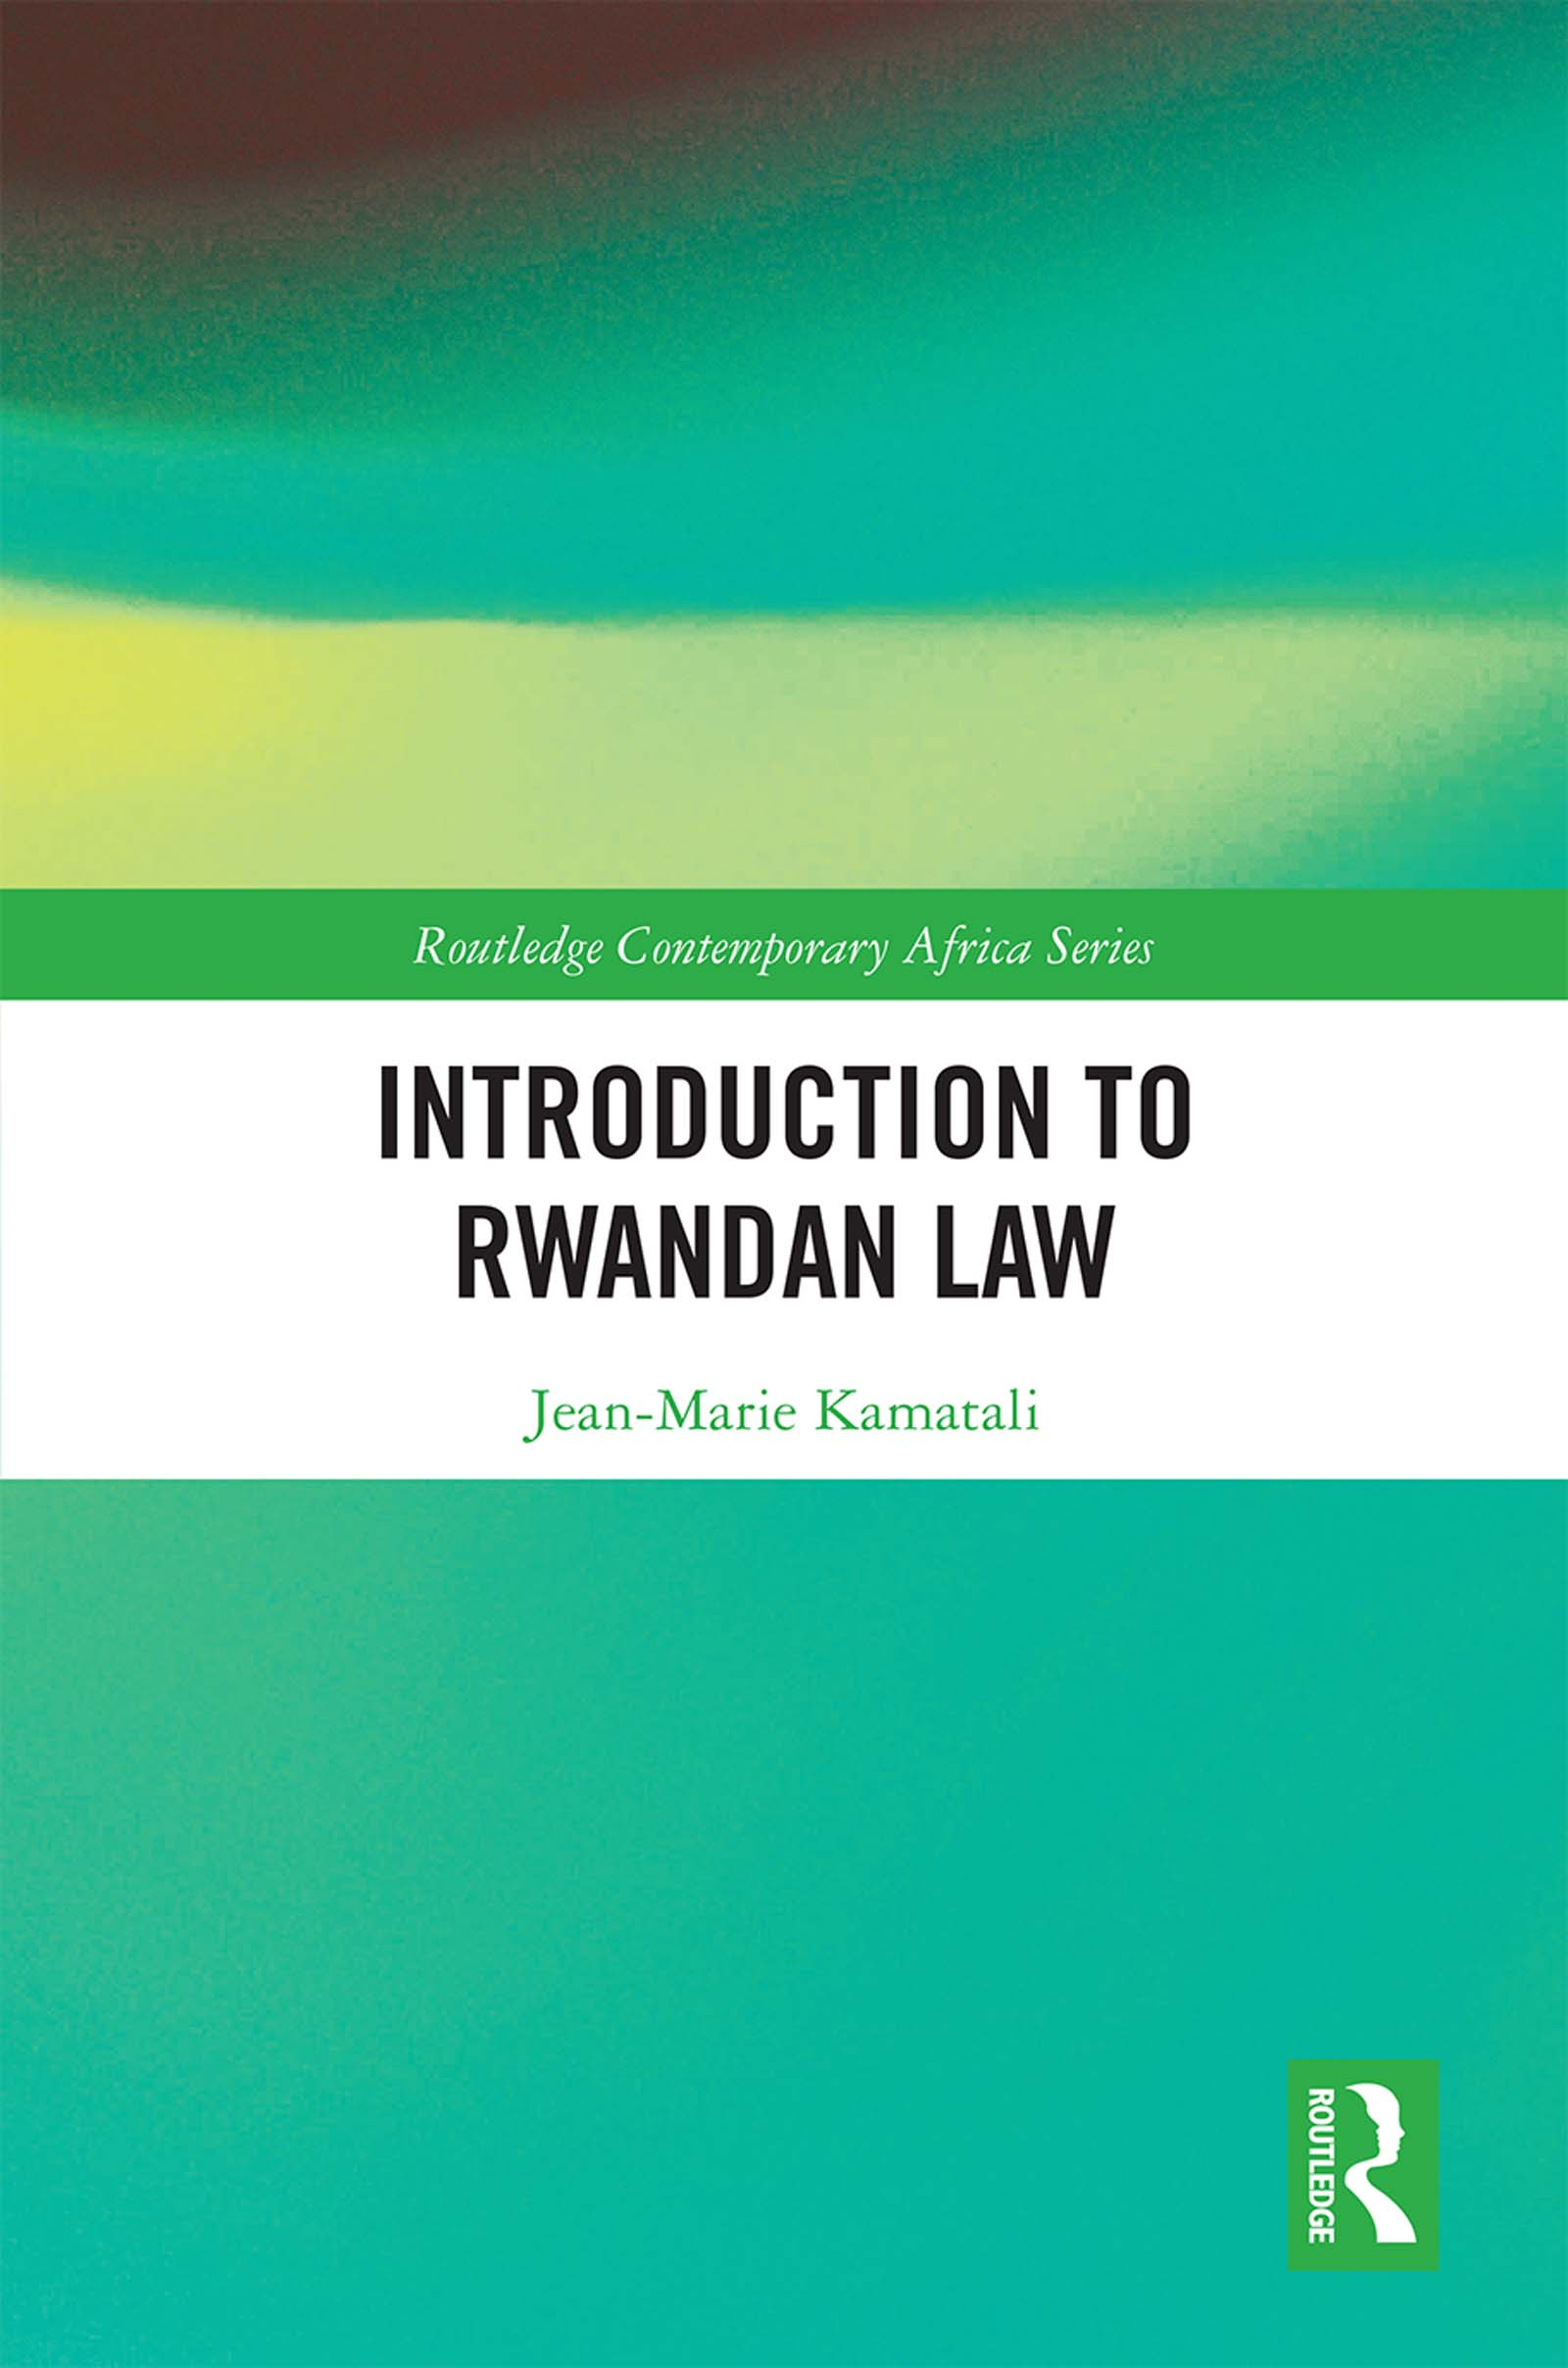 Introduction to Rwandan Law book cover